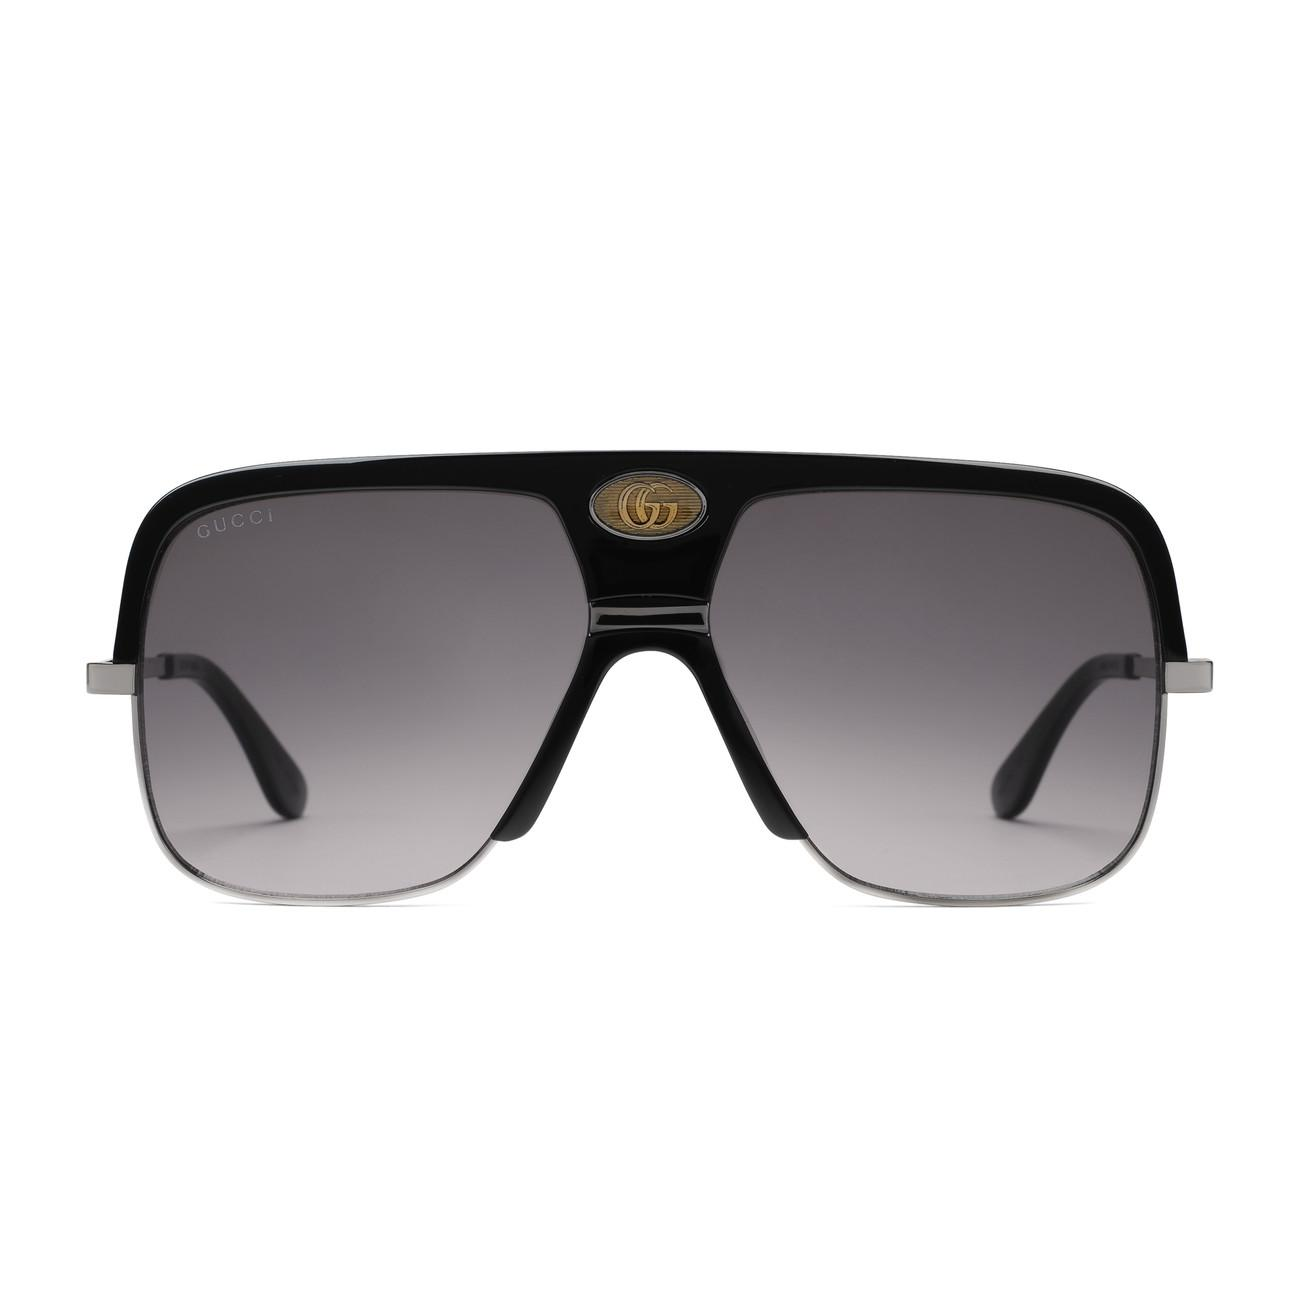 6661b7a142983 Gucci - White Navigator Sunglasses With Double G for Men - Lyst. View  fullscreen